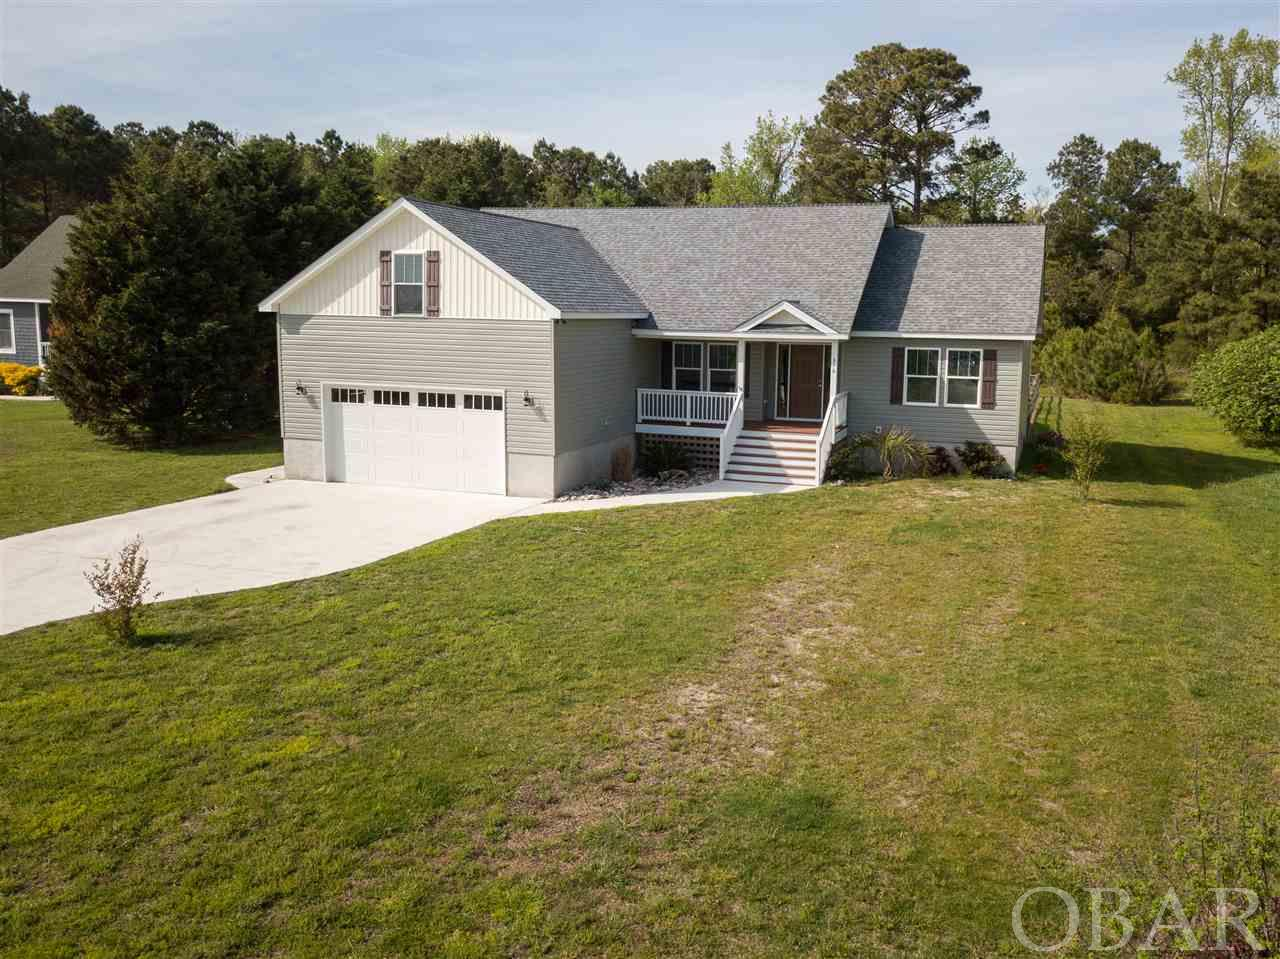 316 Reggie Owens Drive, Harbinger, NC 27941, 3 Bedrooms Bedrooms, ,3 BathroomsBathrooms,Residential,For sale,Reggie Owens Drive,104836